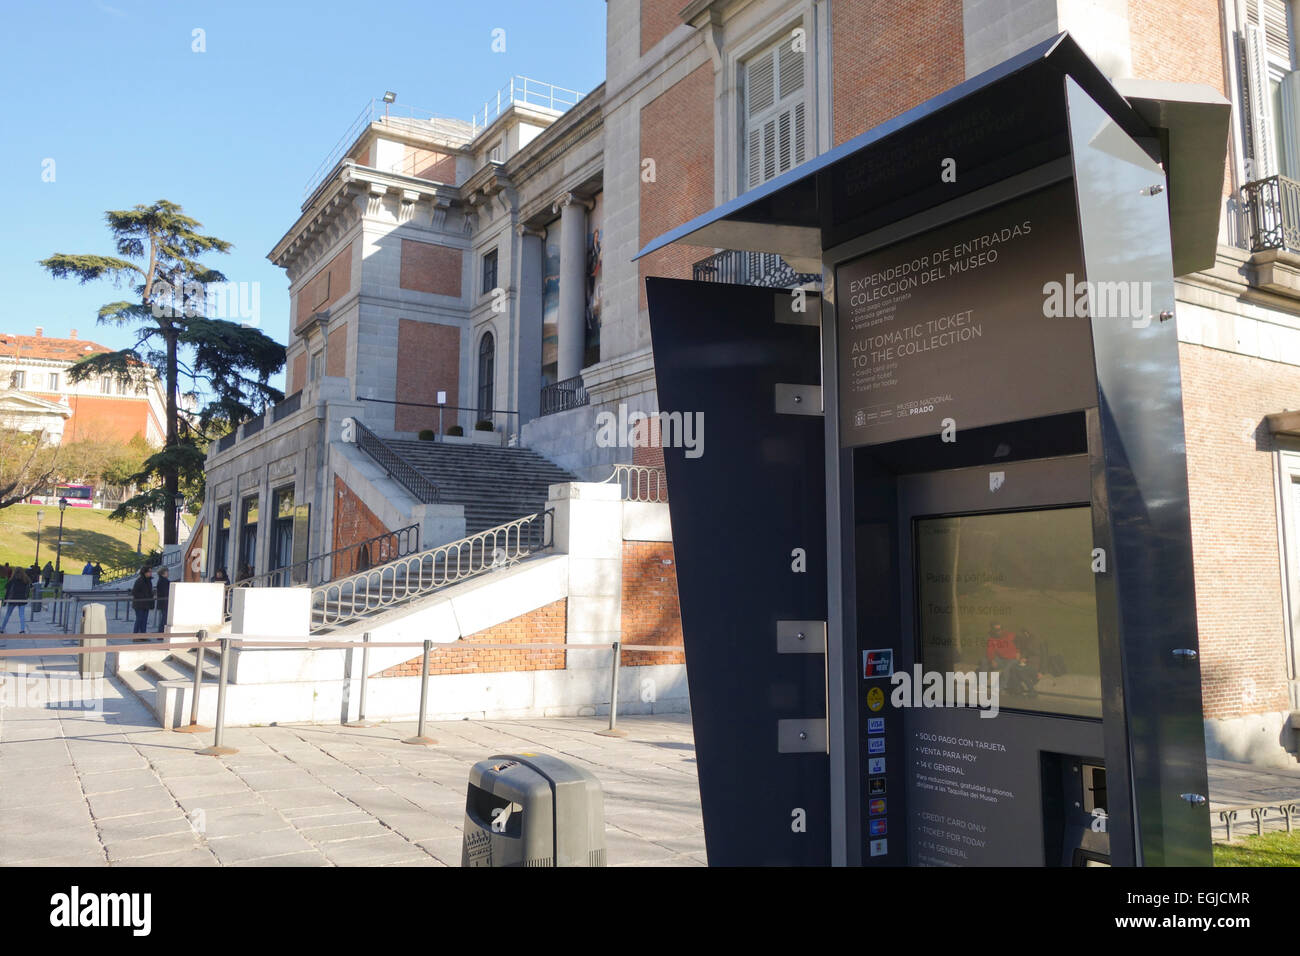 Automatic ticket dispenser, machine for entrance tickets to the Prado Museum, Madrid, Spain. - Stock Image